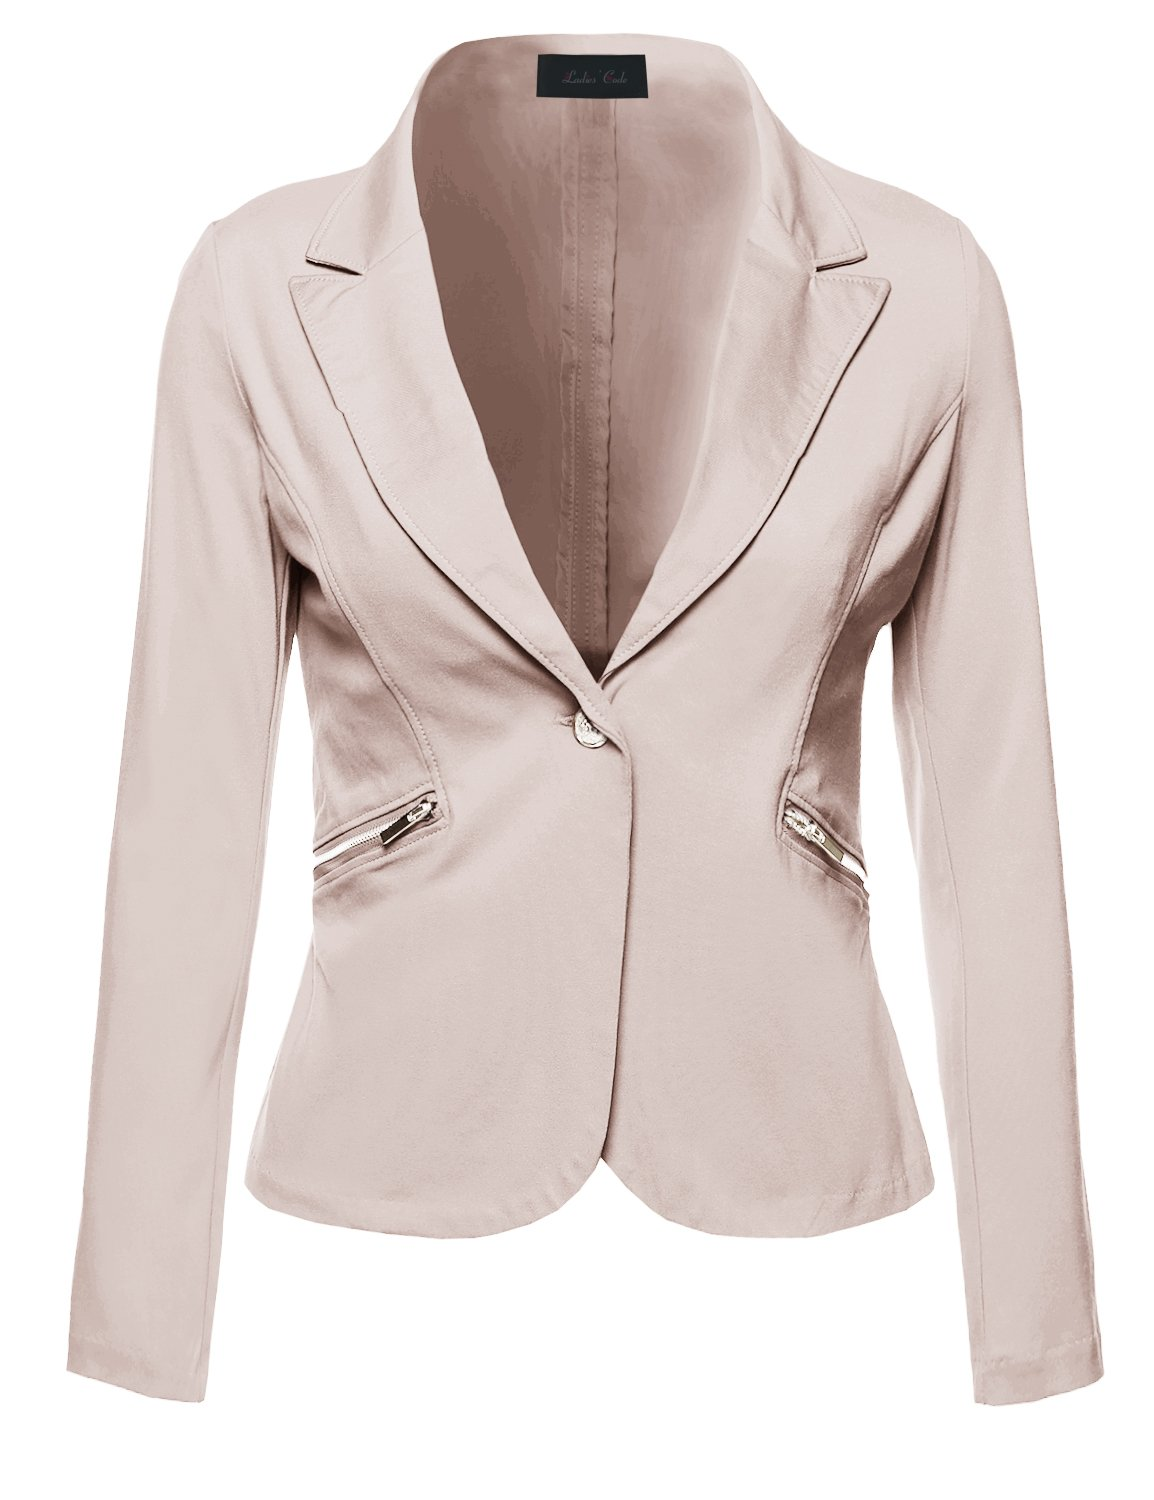 Ladies' Code Business Office Wear Long Sleeve One Button Fly Blazer Khaki M Size